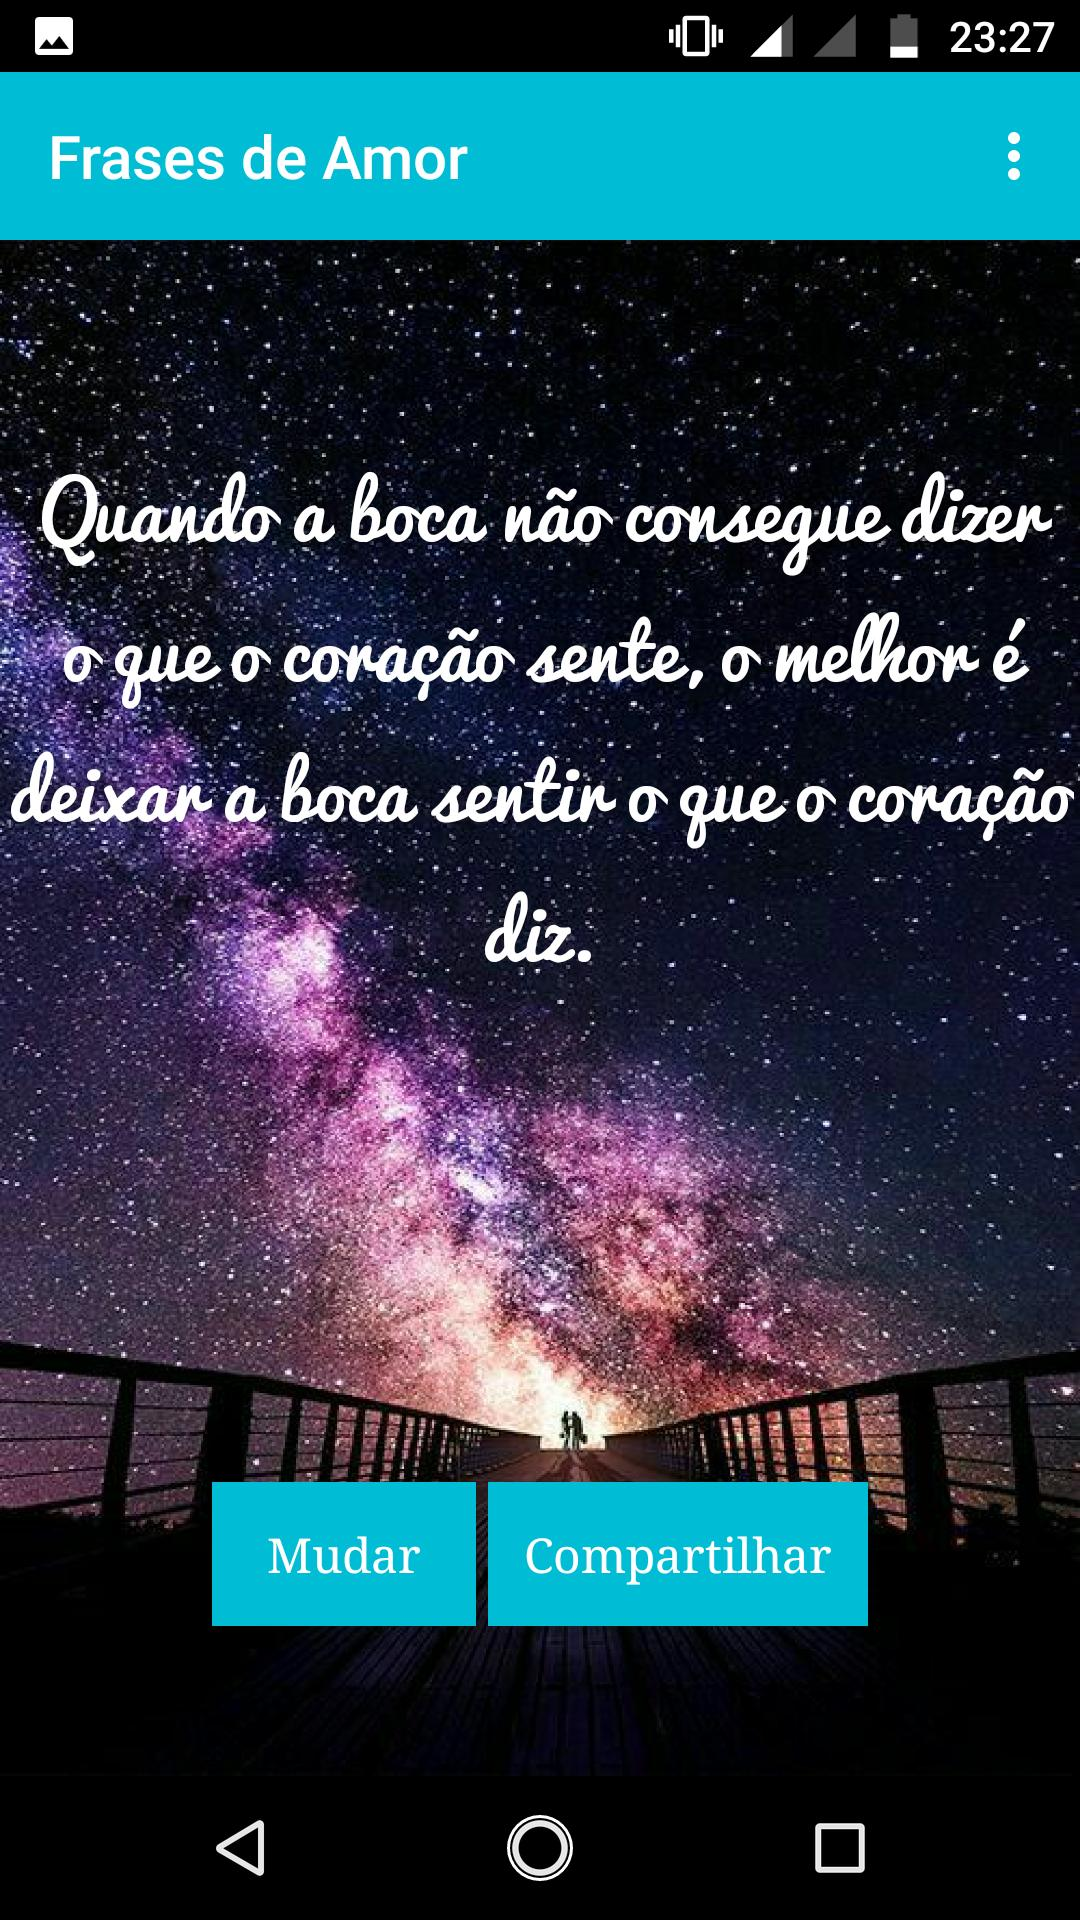 Frases De Amor For Android Apk Download